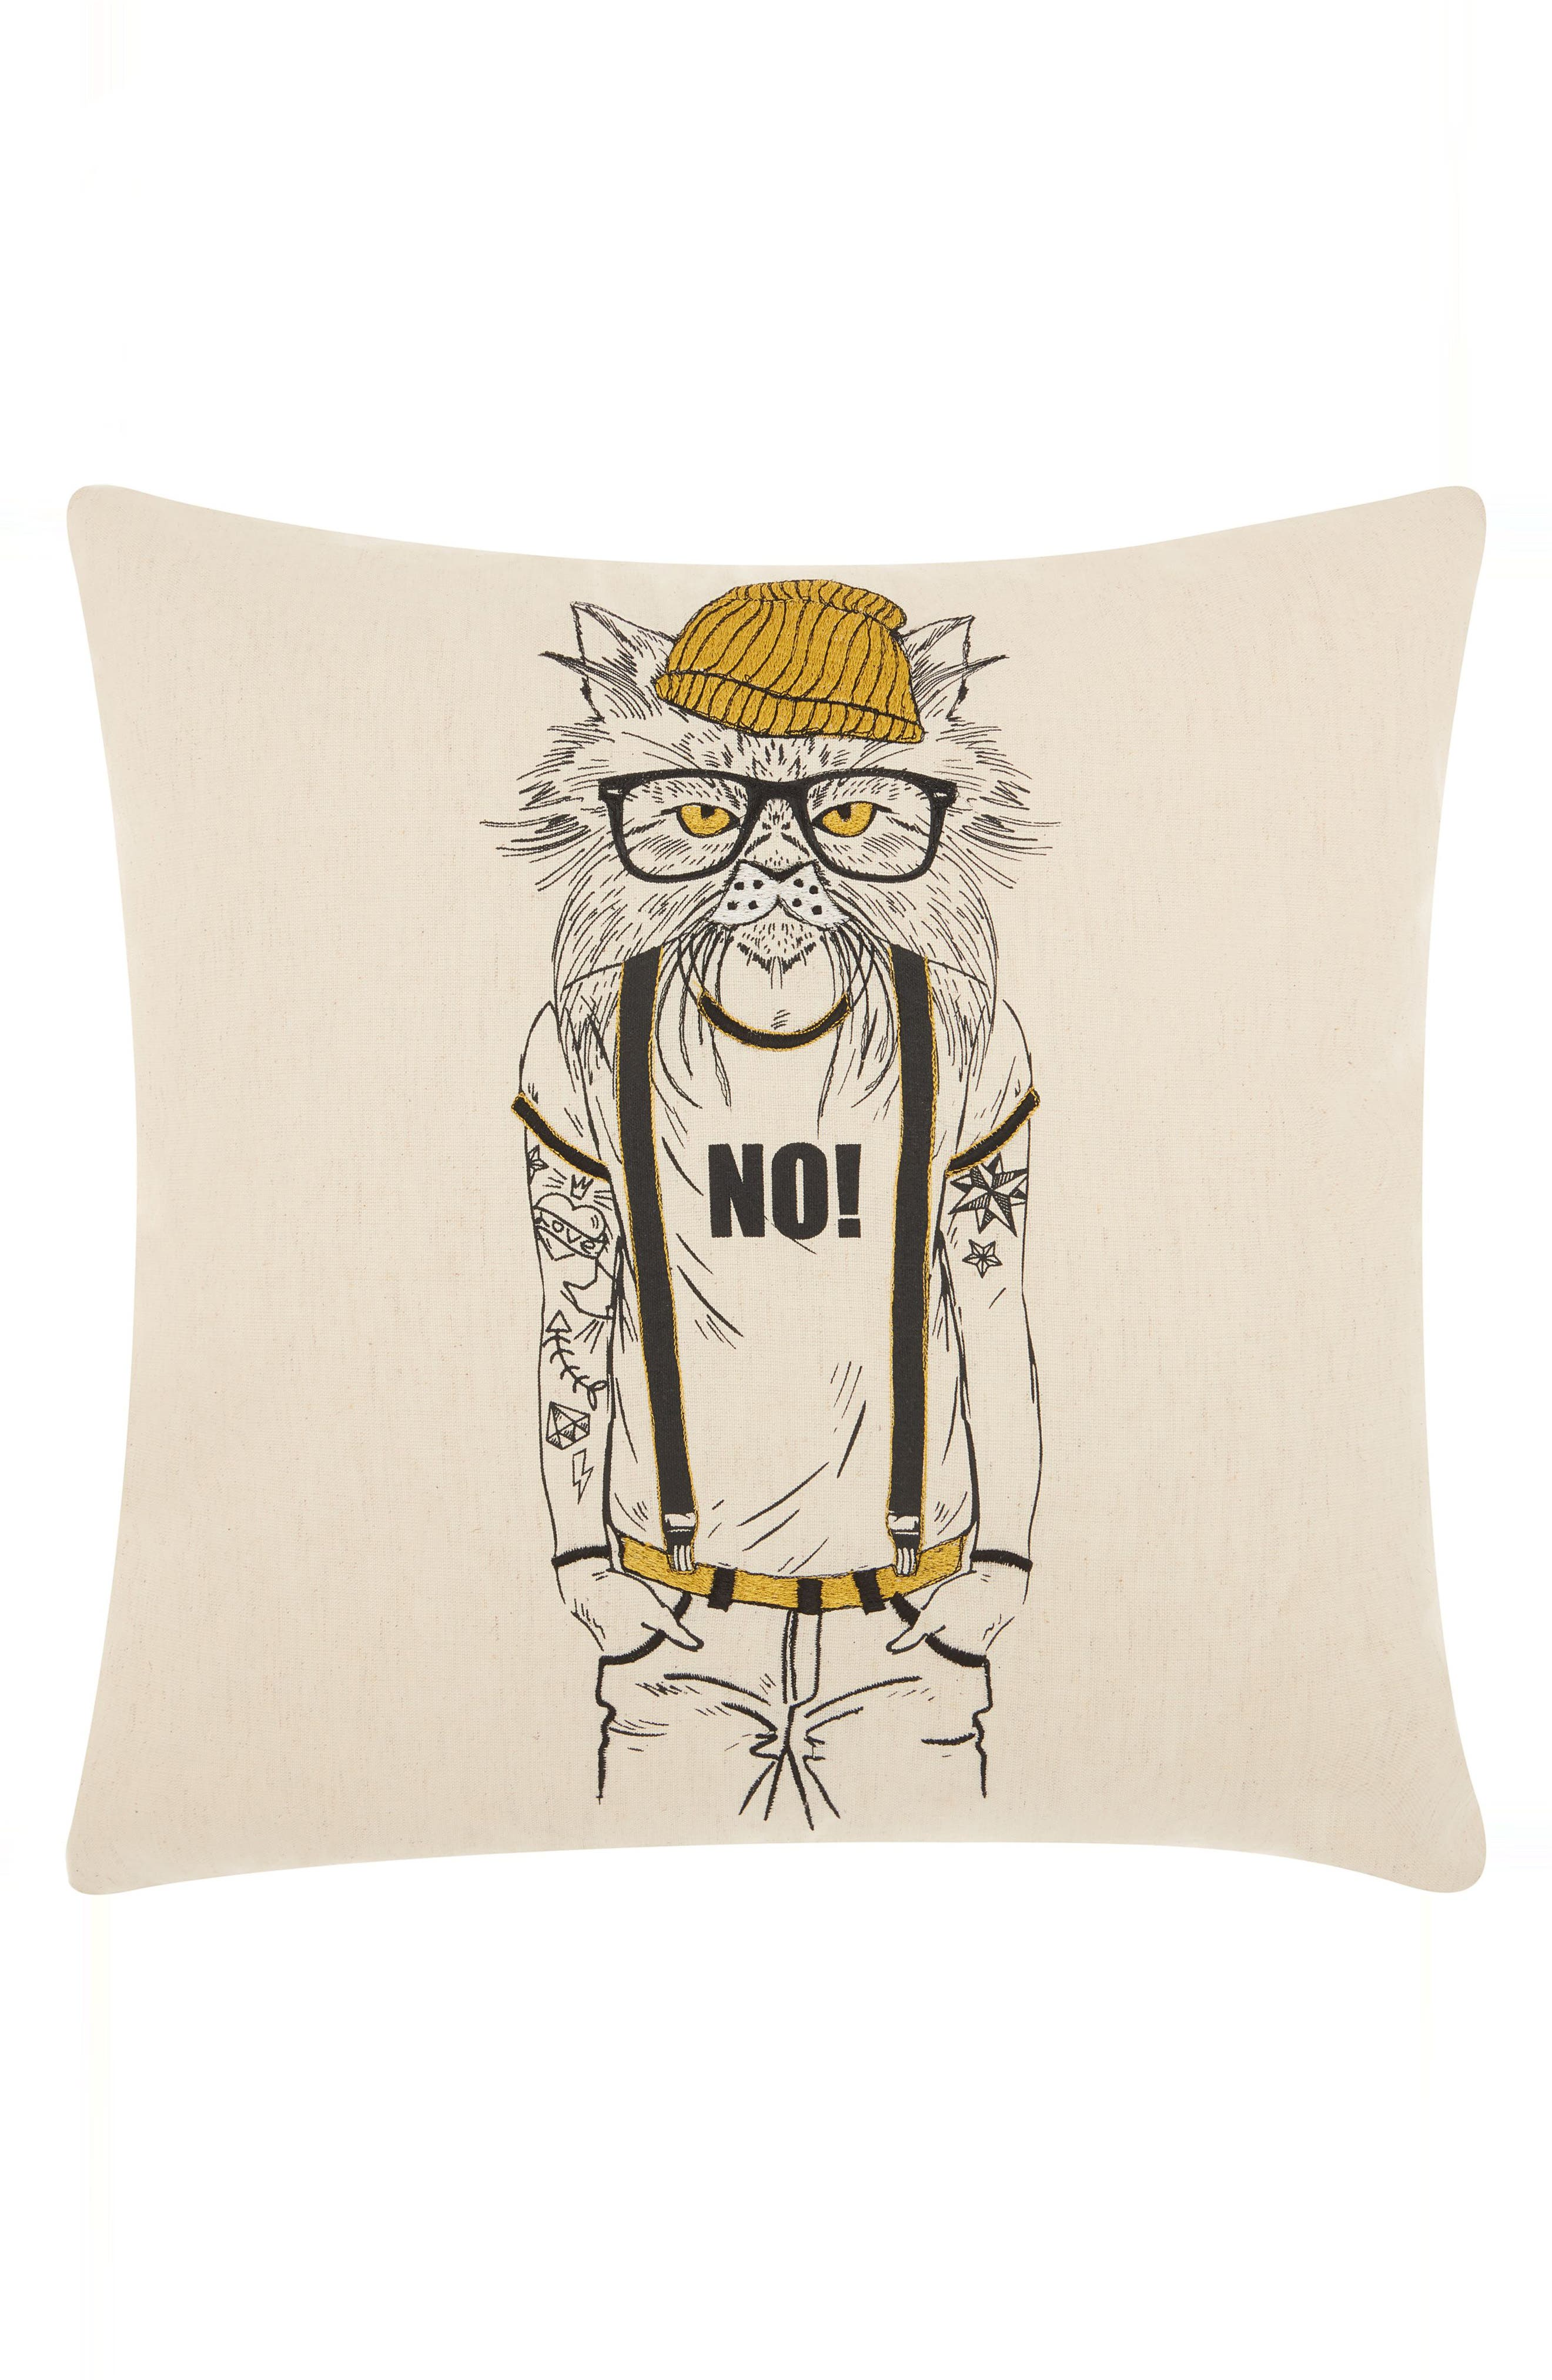 Tattooed Cat Accent Pillow,                             Main thumbnail 1, color,                             250